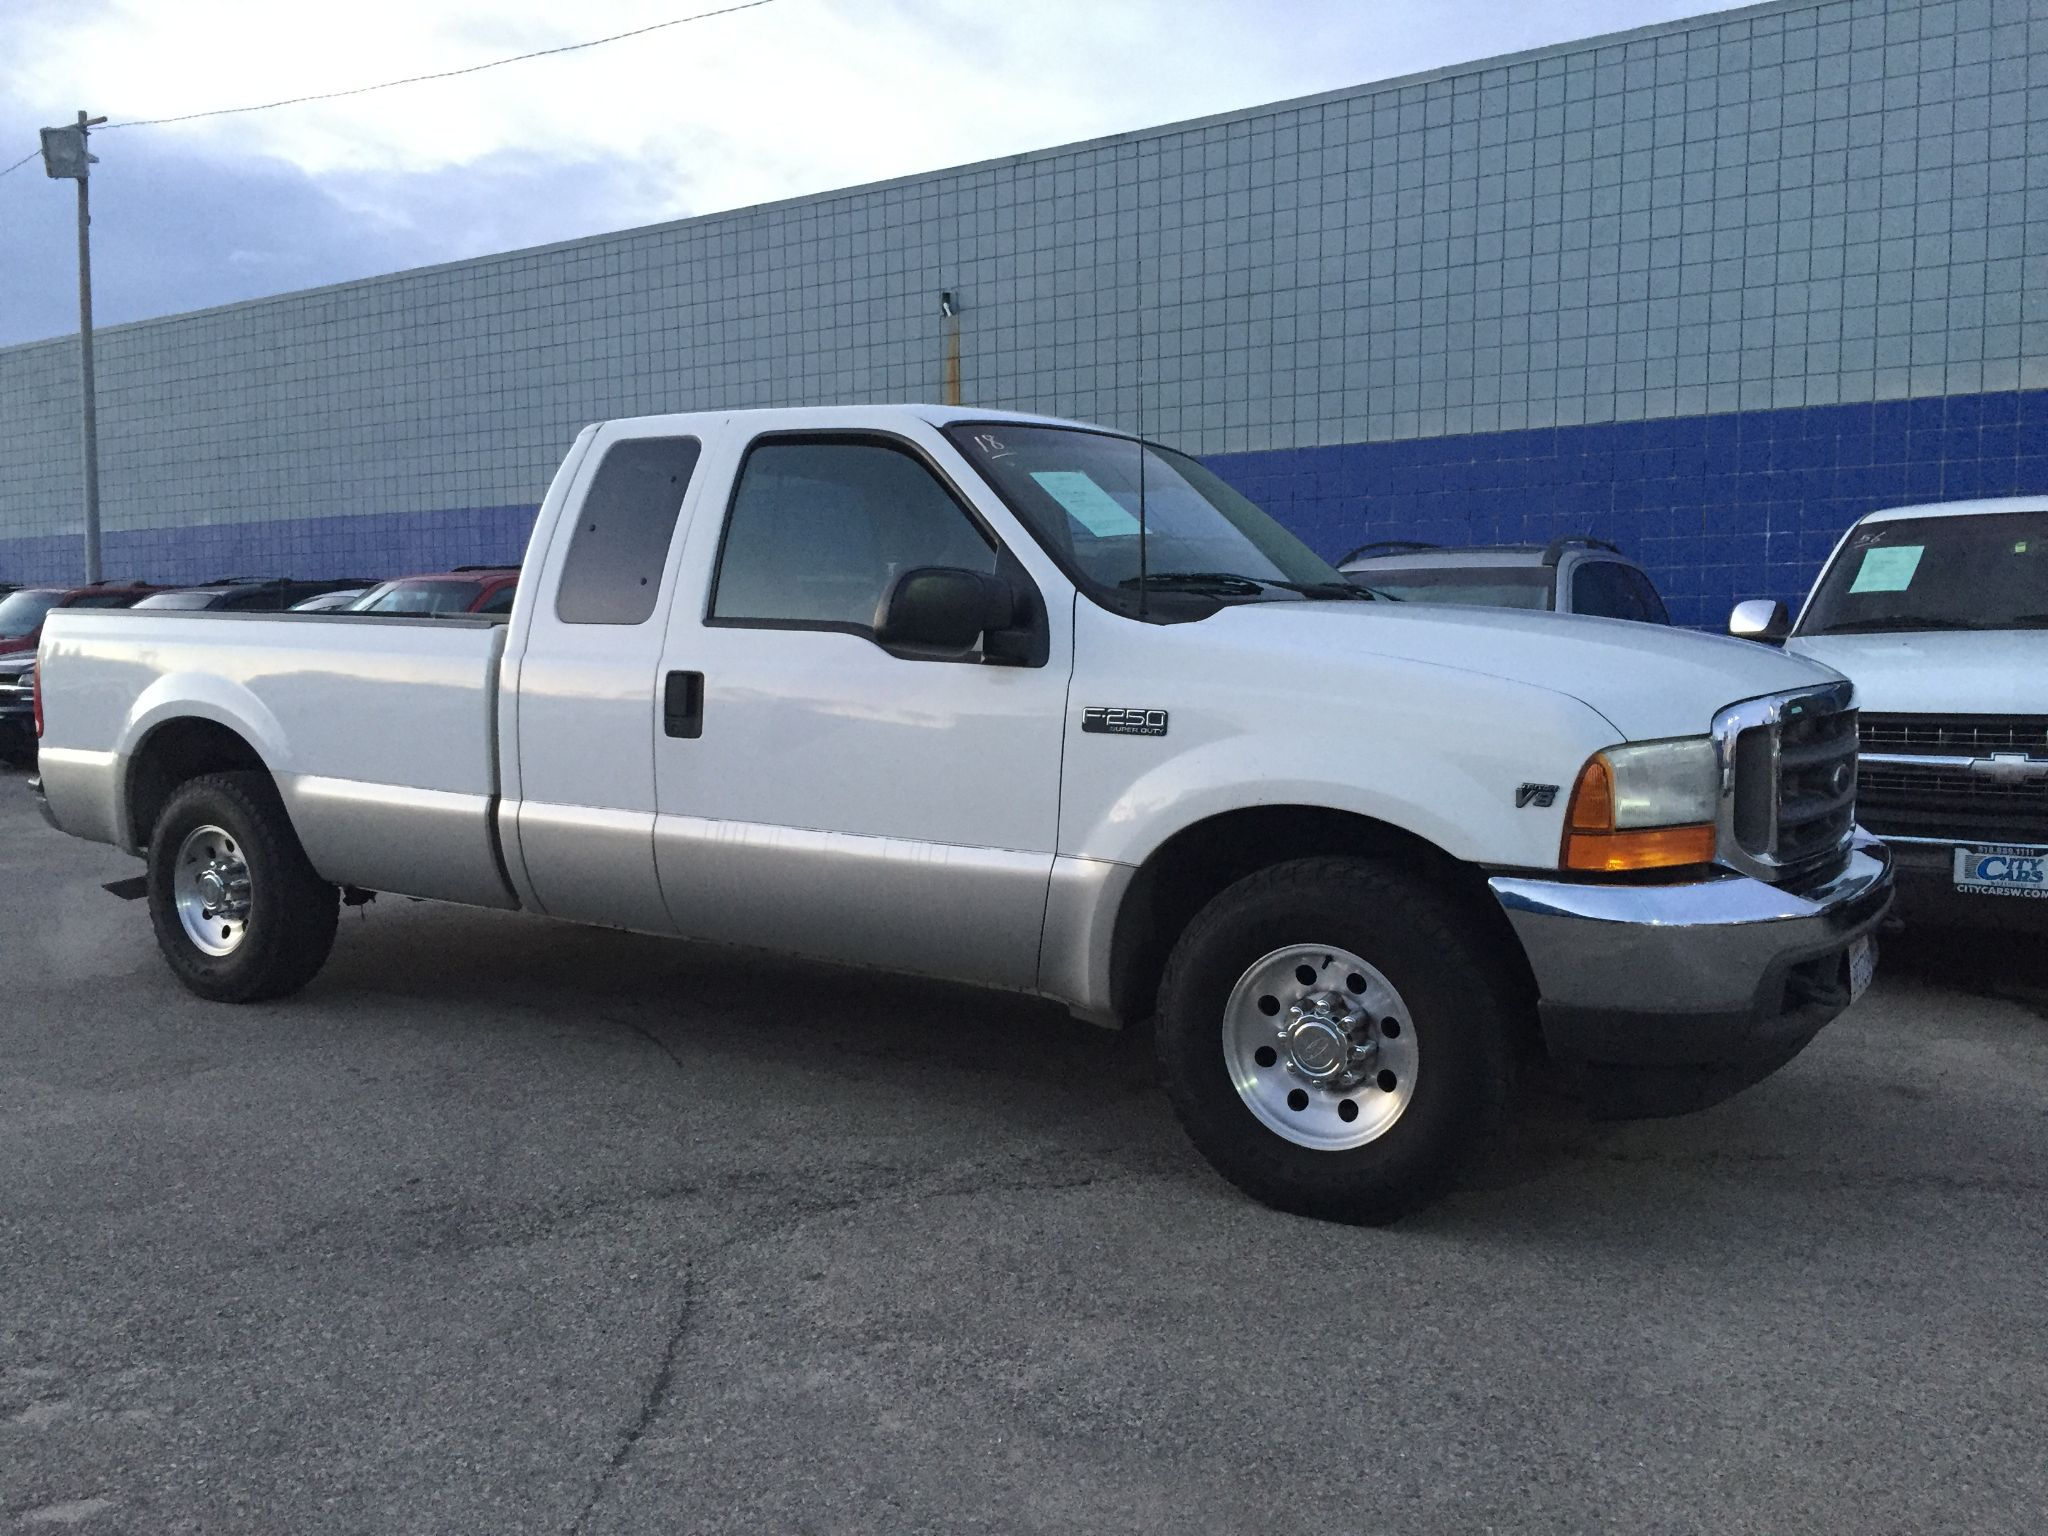 Used 2000 Ford Super Duty F 250 Xl At City Cars Warehouse Inc F250